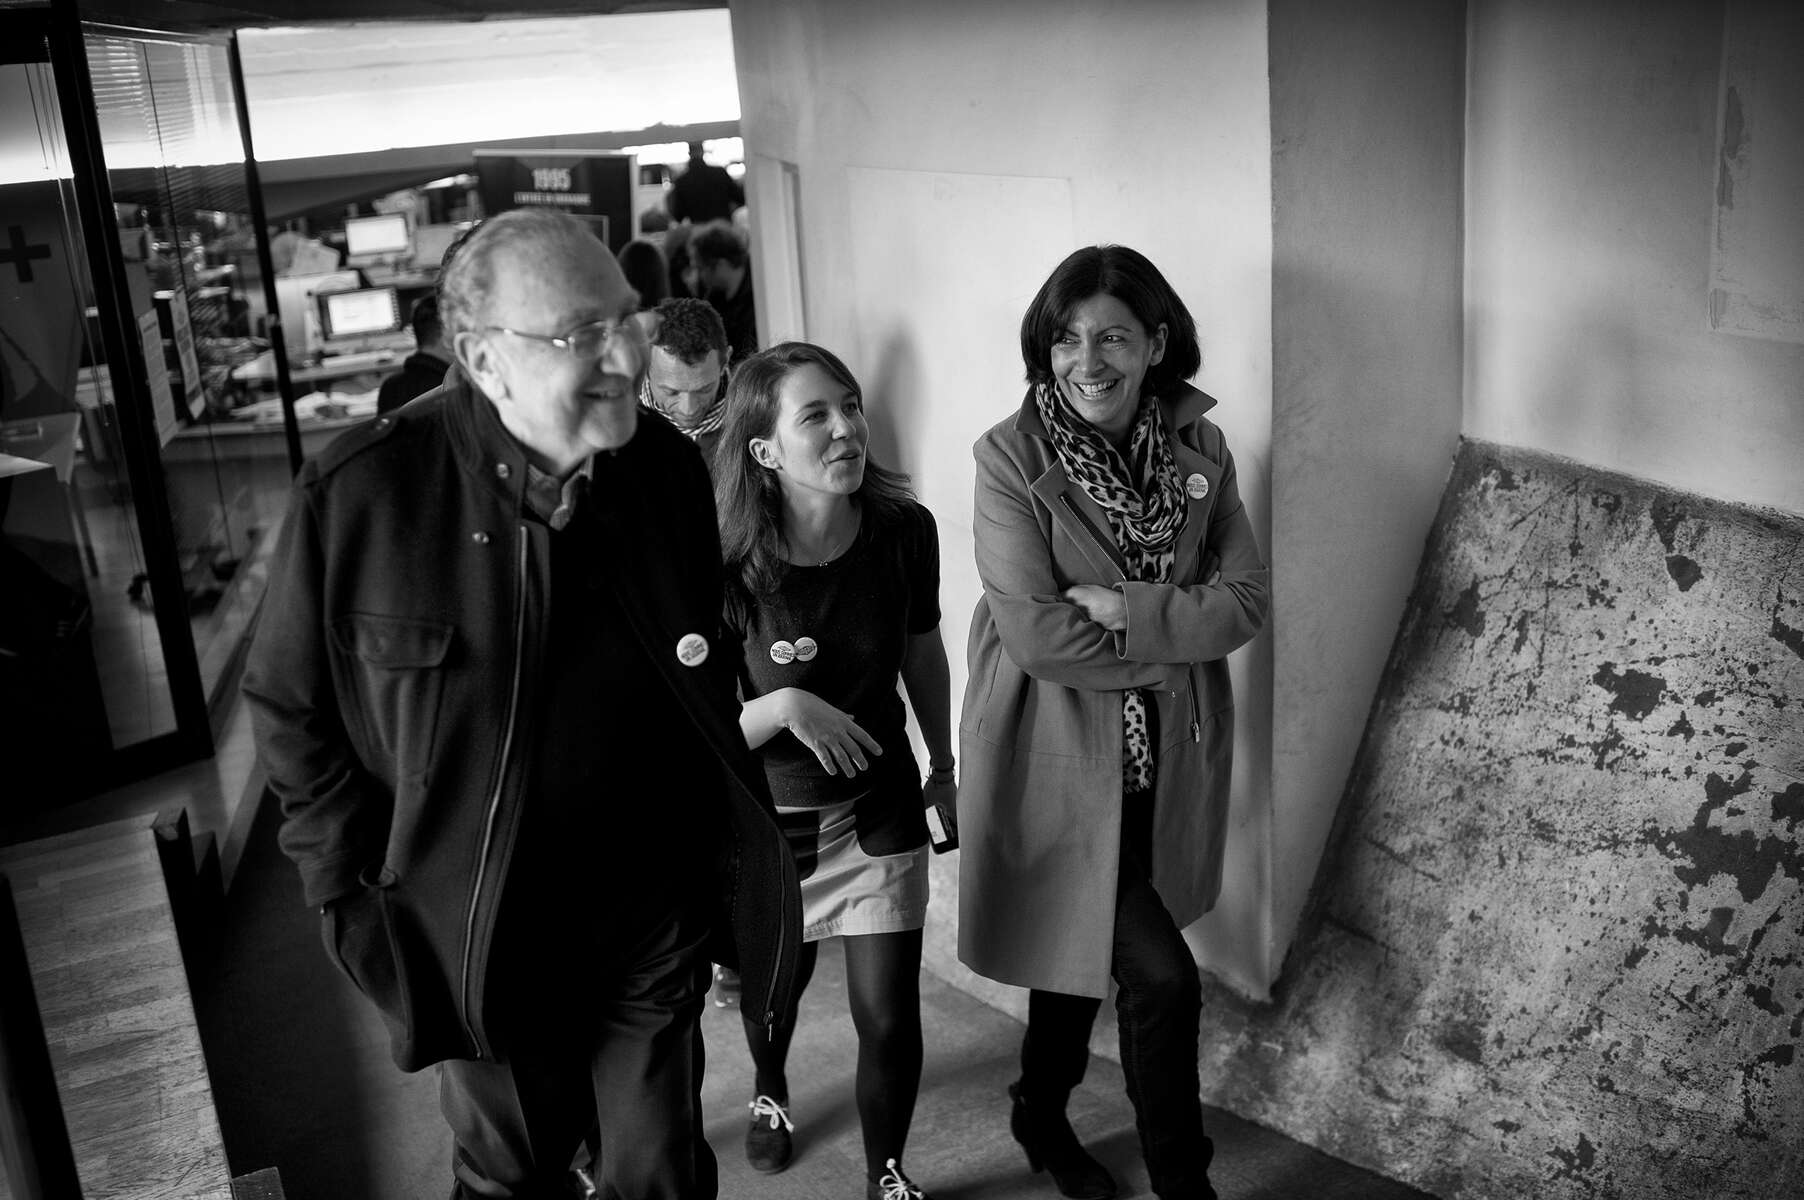 March 15, 2014.  PARIS, FRANCE-  Mayoral candidate Anne Hidalgo attends a {quote}Save Libération{quote} event at the left-wing newspaper's headquarters to lend support to their efforts not be shuttered by their shareholders.   For the first time in France's history, Paris will have a woman as a mayor - either Socialist Anne Hidalgo or Center-Right Nathalie Kosciusko-Morizet.  Photo by Scout Tufankjian